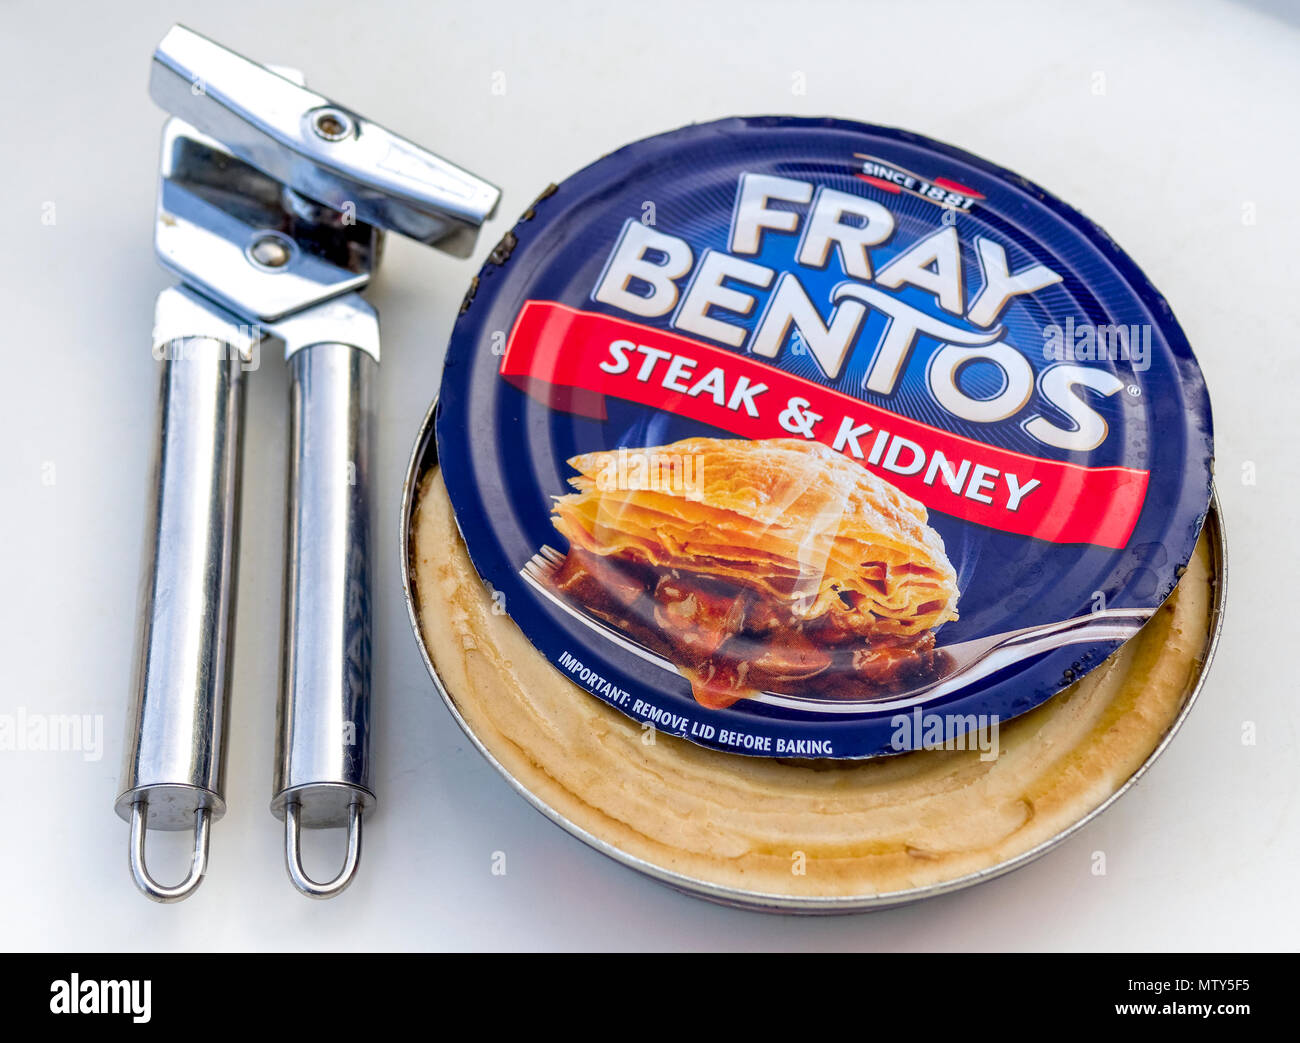 Fray Bentos Classic Steak & Kidney Pie in a Tin with Can Opener, Fray  Bentos was first formed around 1865 in Uruguay - Stock Image